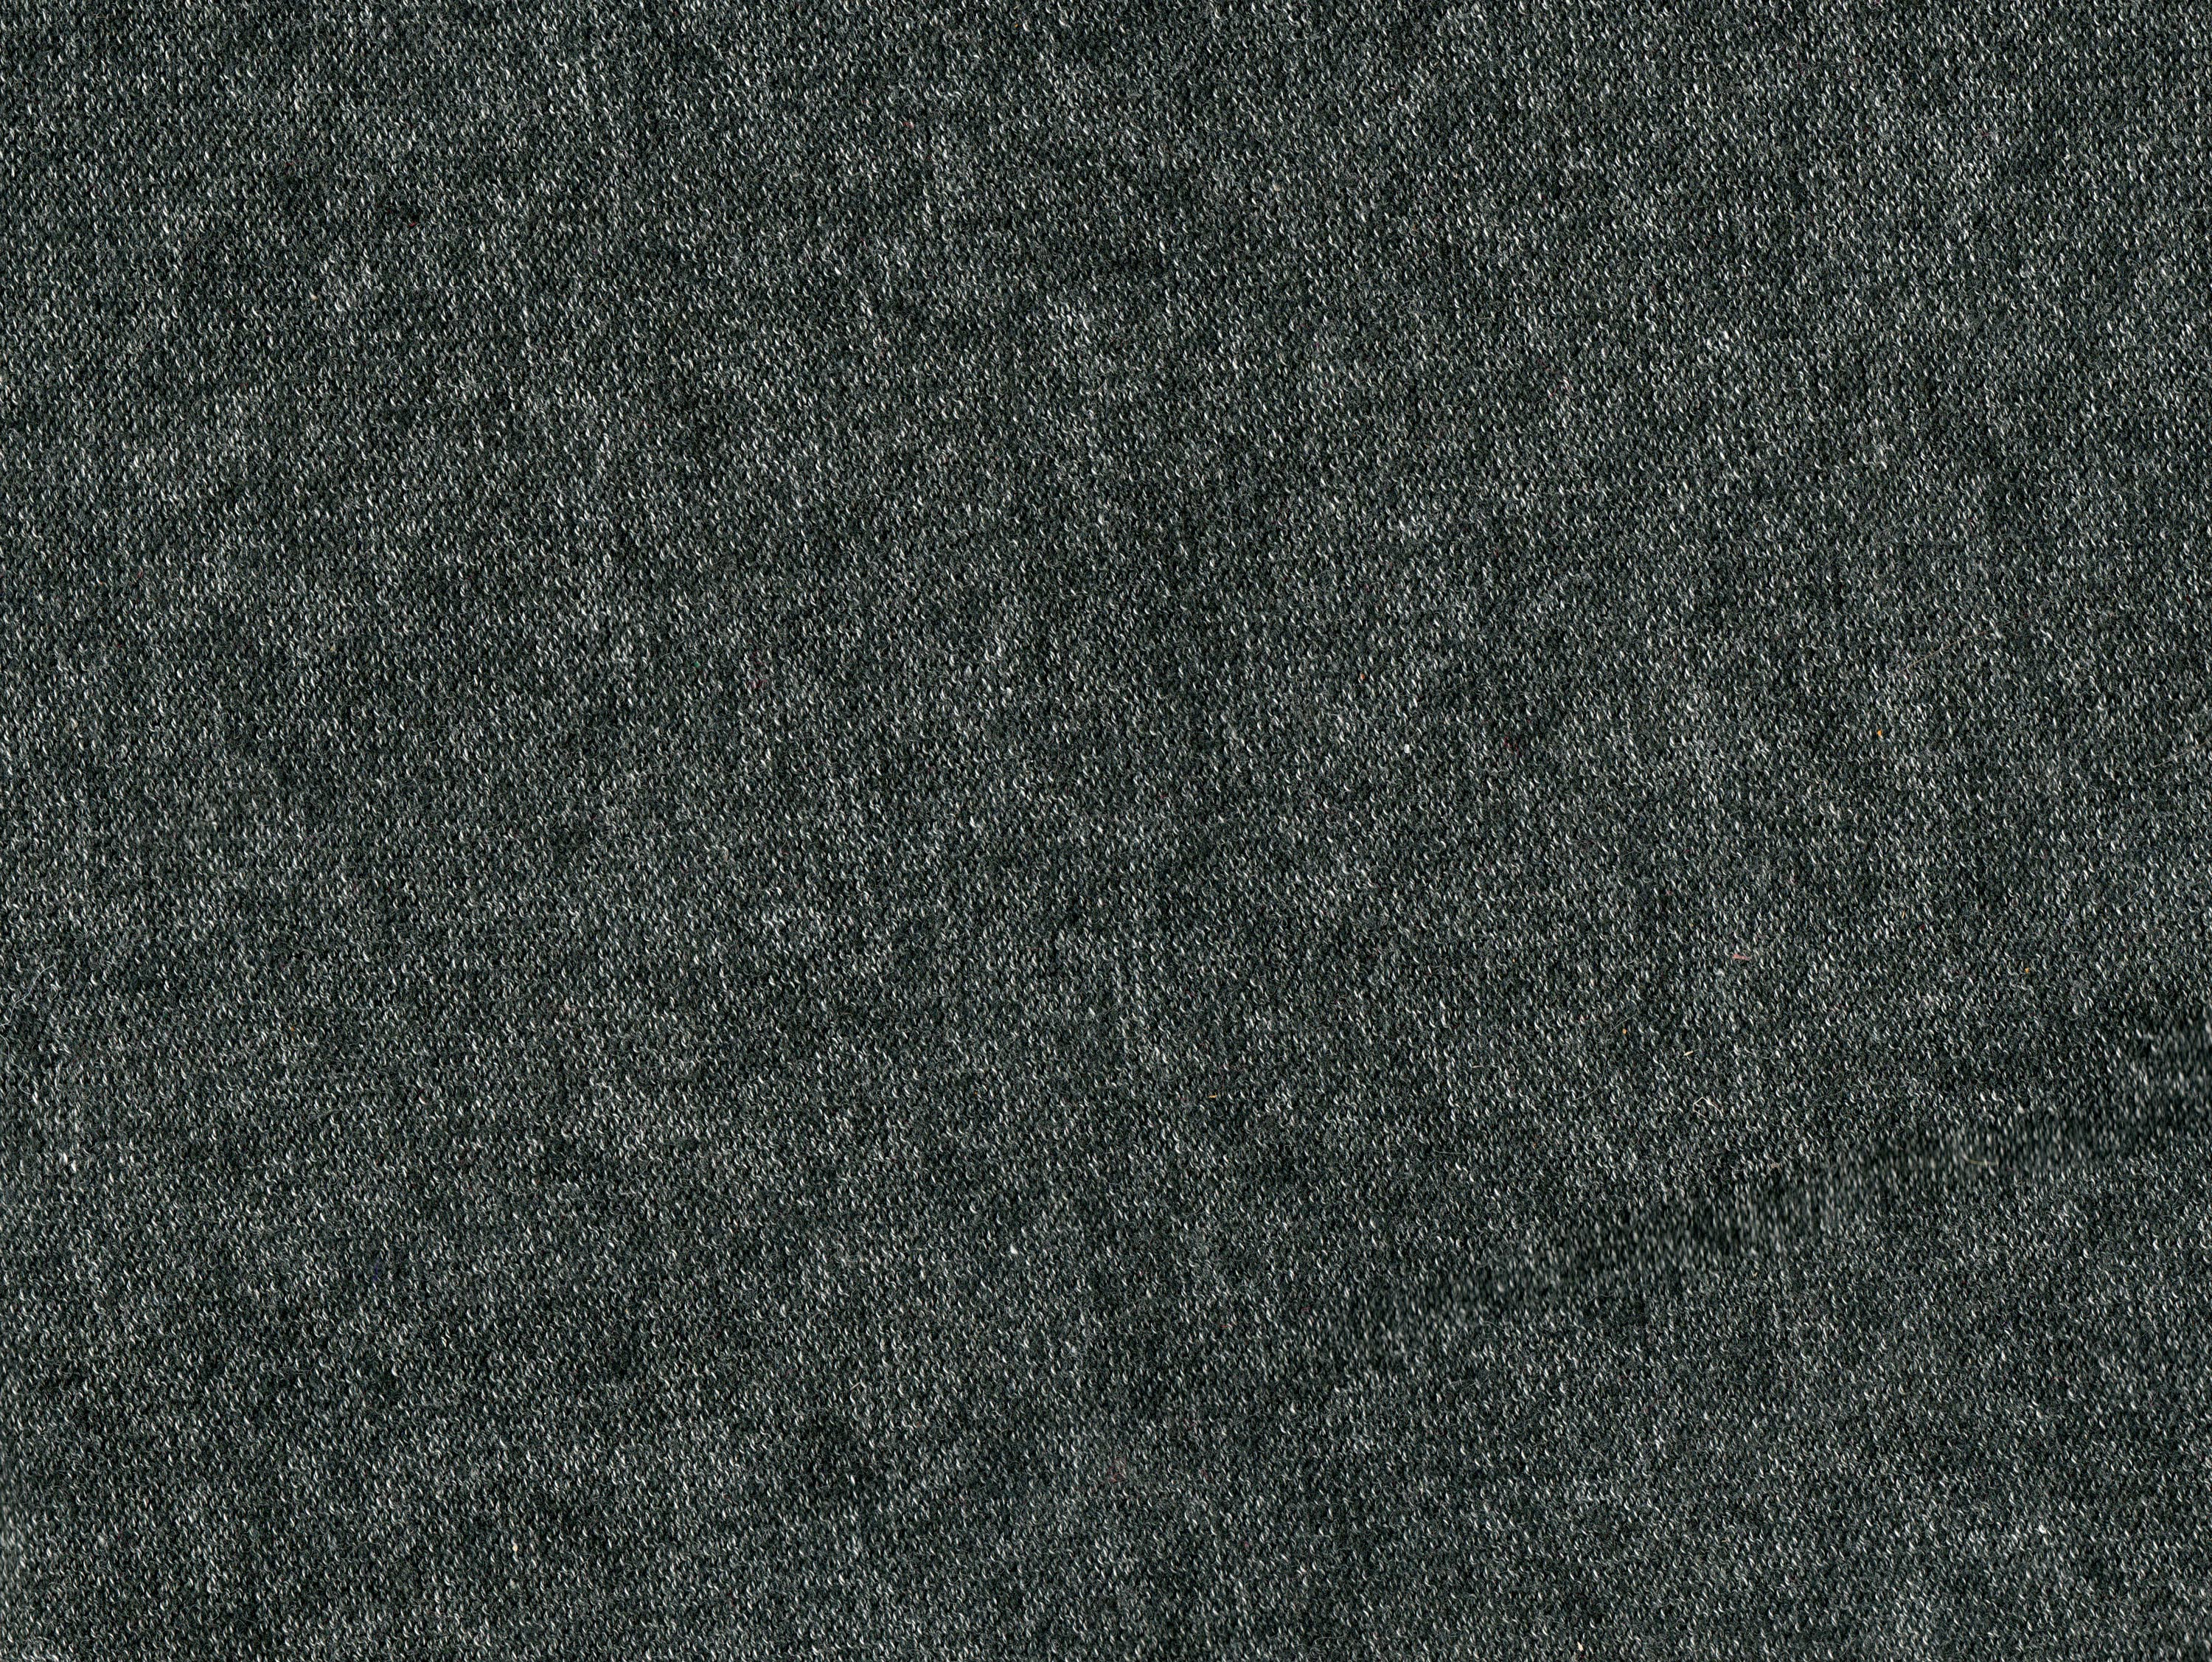 Fabric texture fabrik for Cloth material